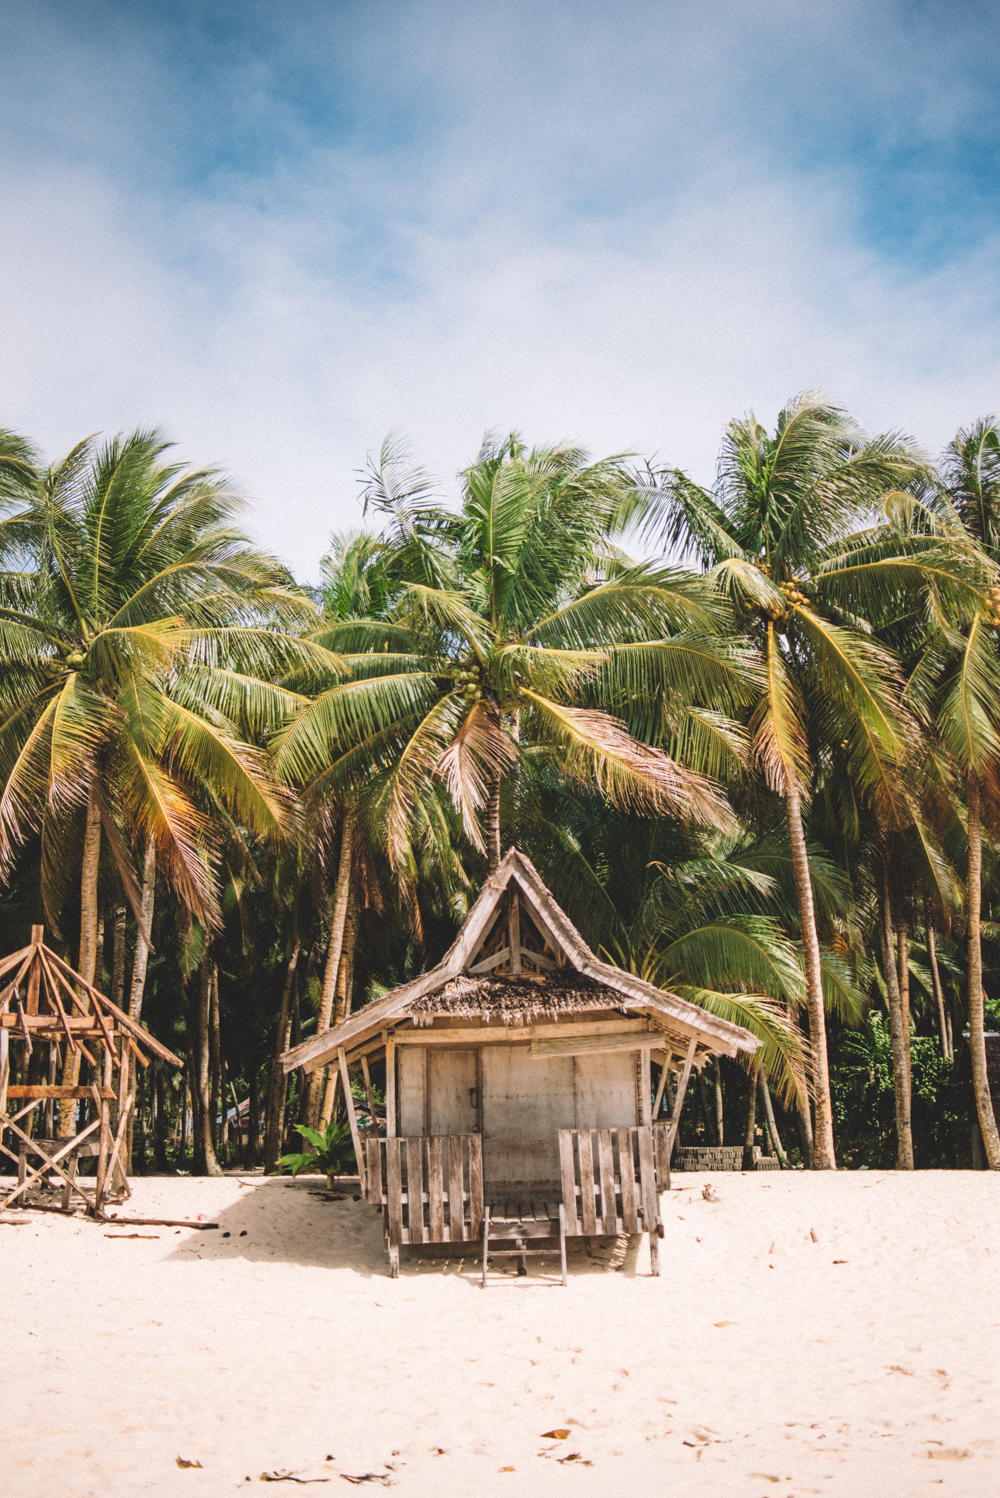 Siargao Island, Philippines | Travel Photography by Melissa de Mata